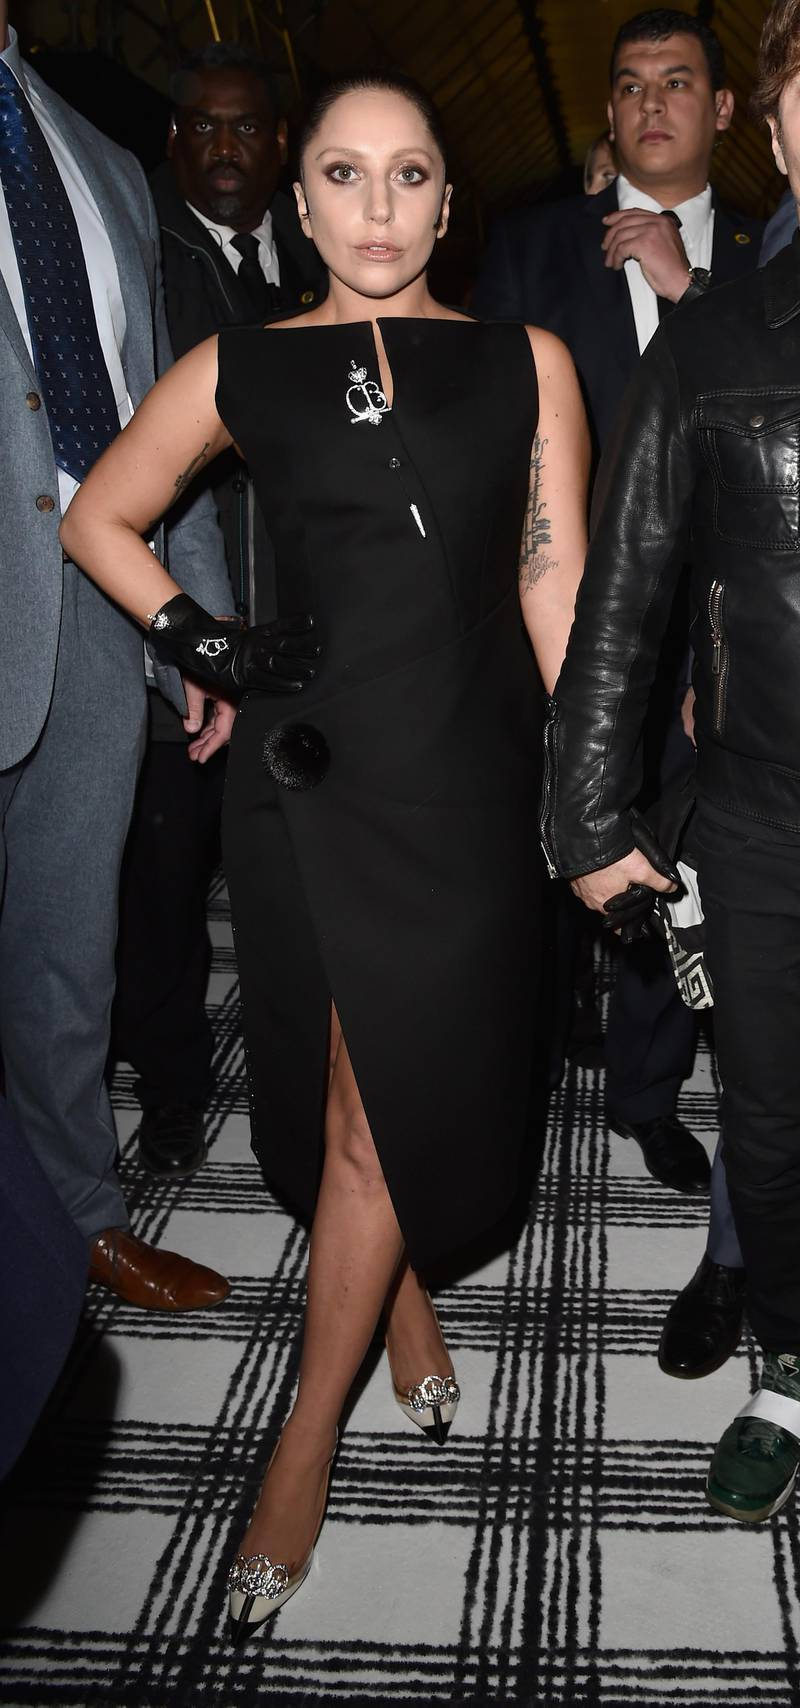 PARIS, FRANCE - MARCH 06:  Lady Gaga attends the Balenciaga show as part of the Paris Fashion Week Womenswear Fall/Winter 2015/2016  on March 6, 2015 in Paris, France.  (Photo by Pascal Le Segretain/Getty Images)